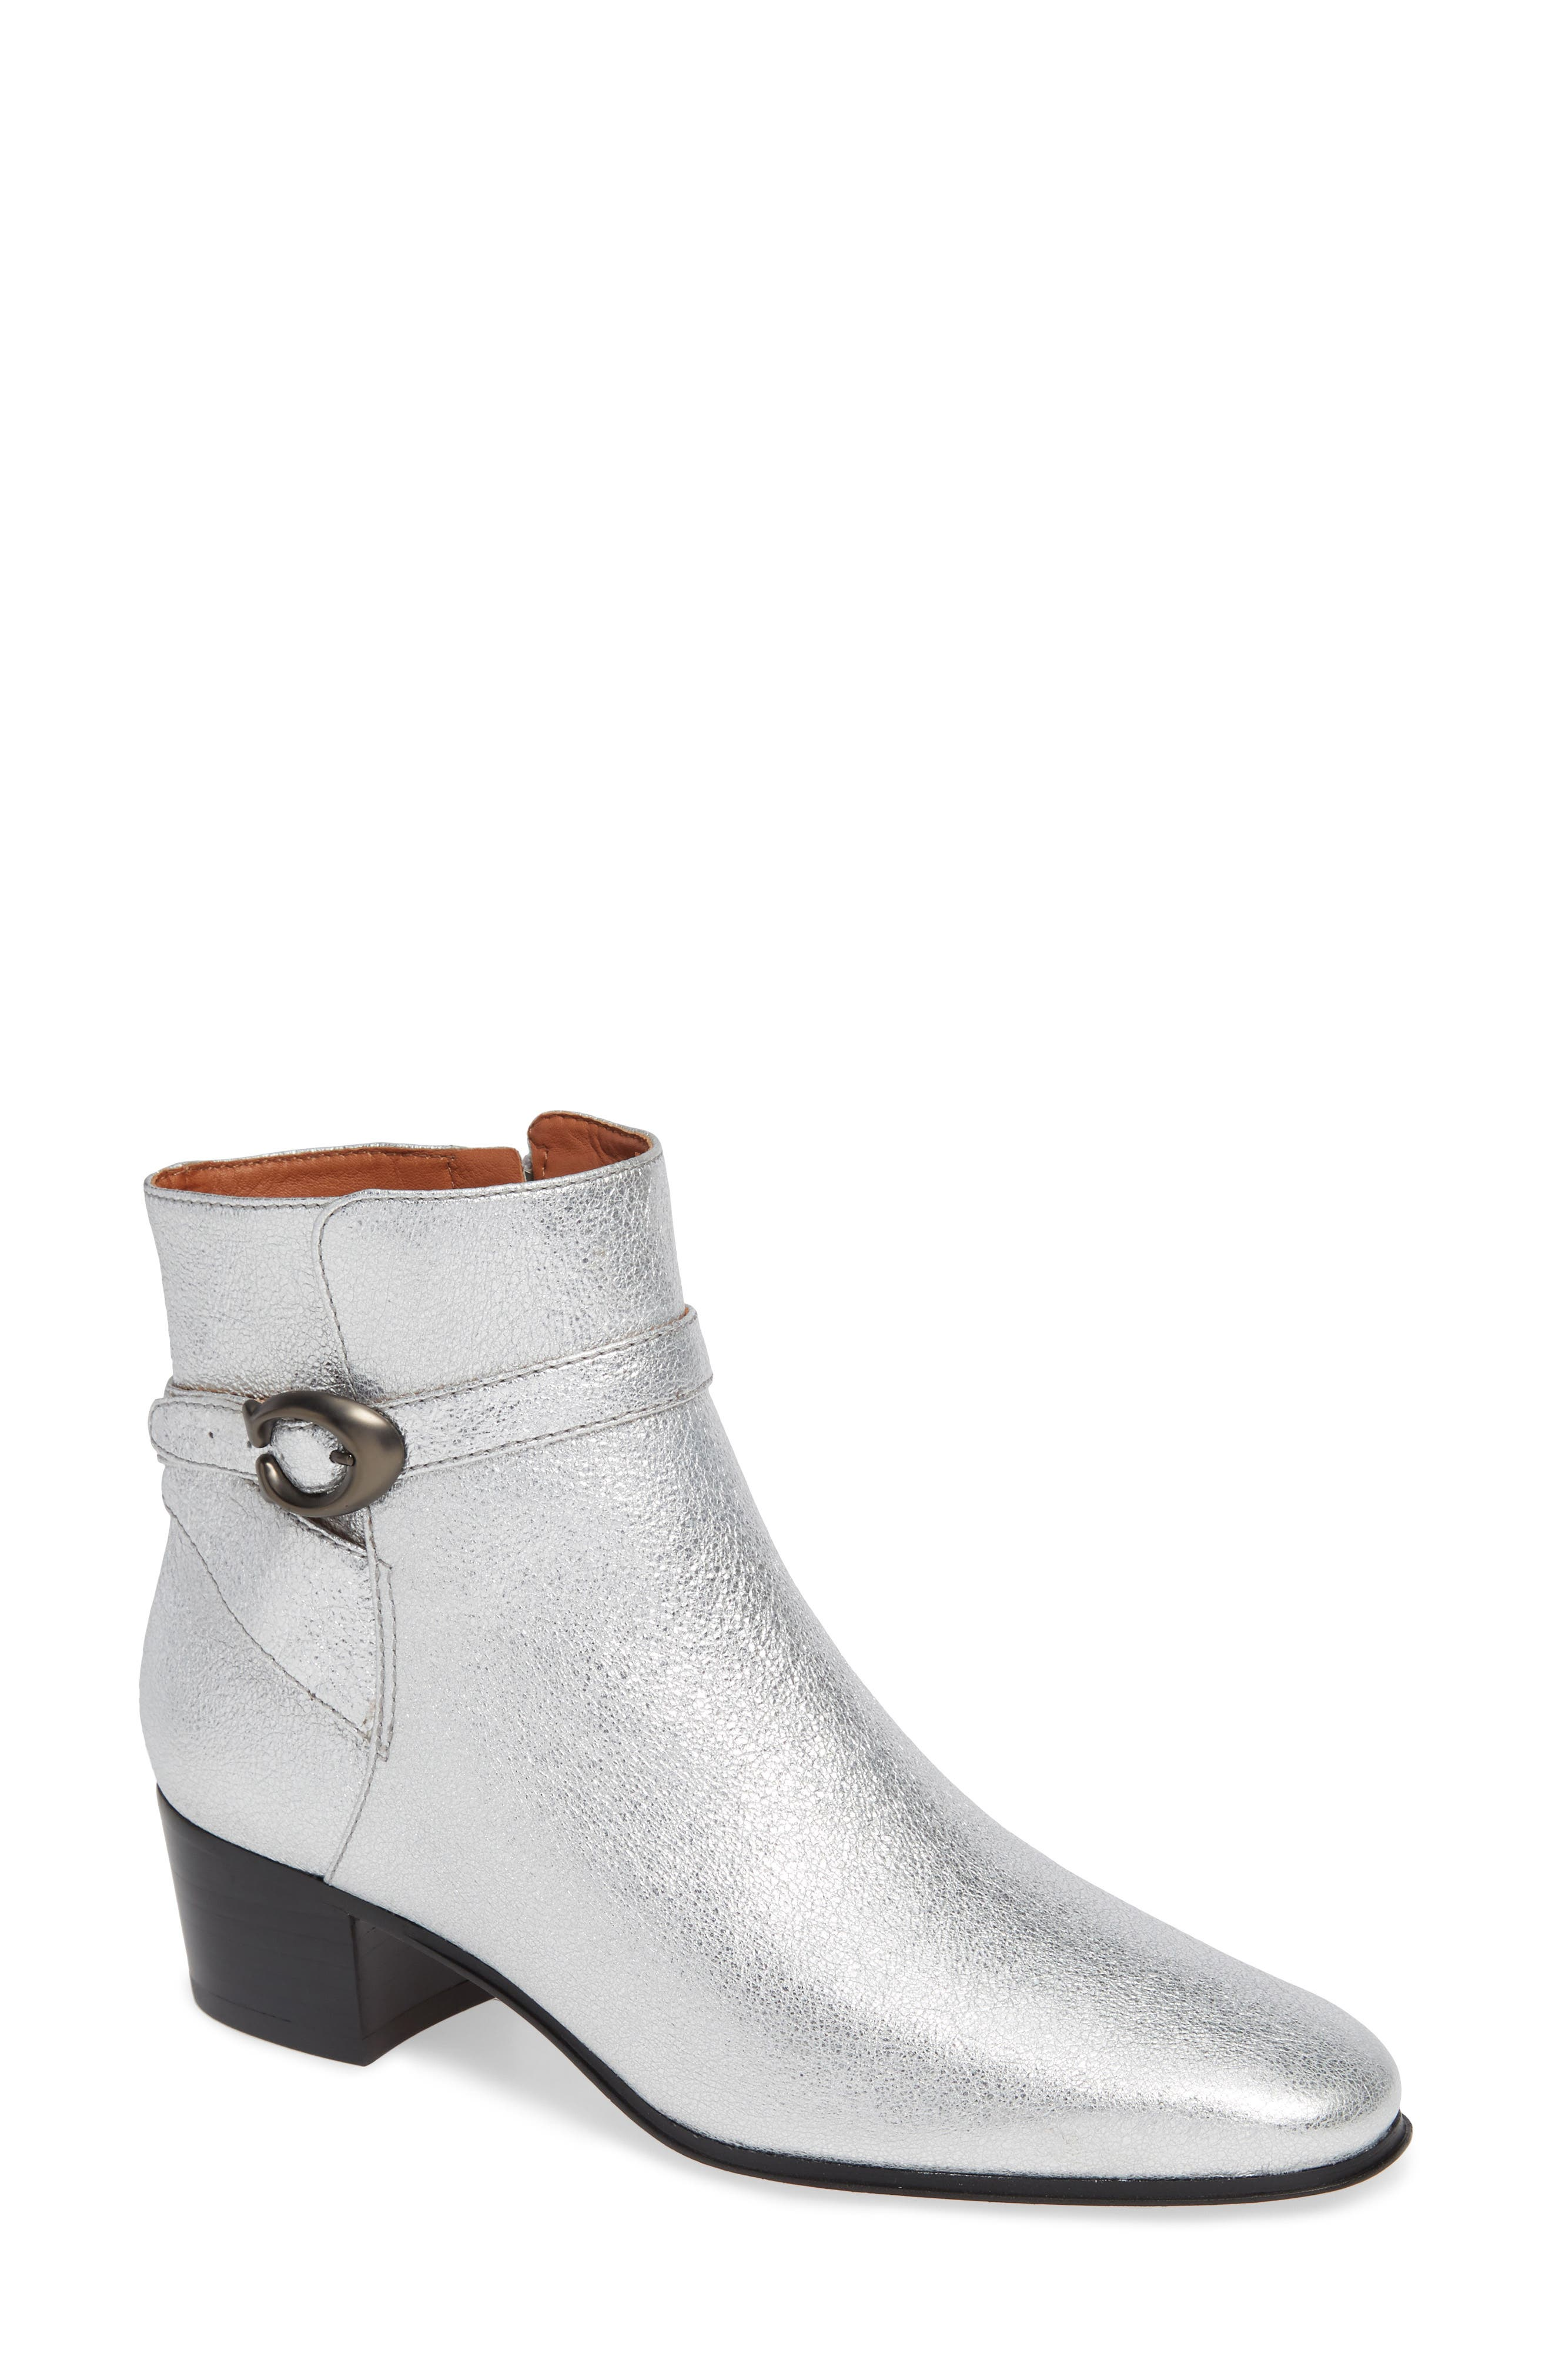 Chrystie Bootie,                         Main,                         color, SILVER LEATHER